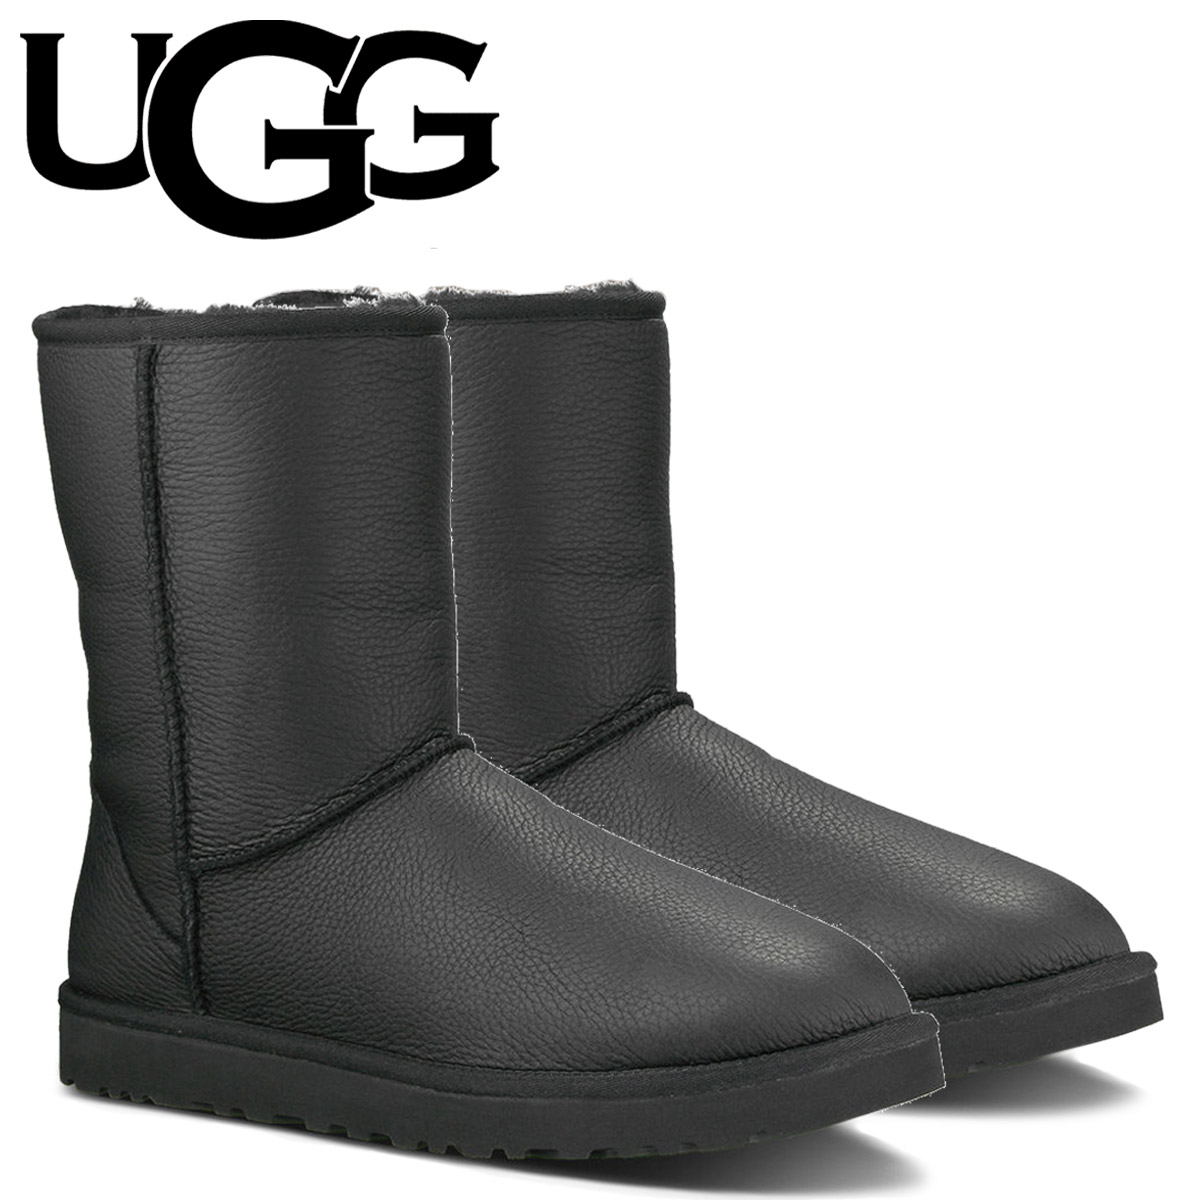 Point 2 x UGG UGG men's classic short boots MENS CLASSIC SHORT Sheepskin leather 2014 new 1003944 black [11 / 26 new stock] [regular] 02P30Nov14